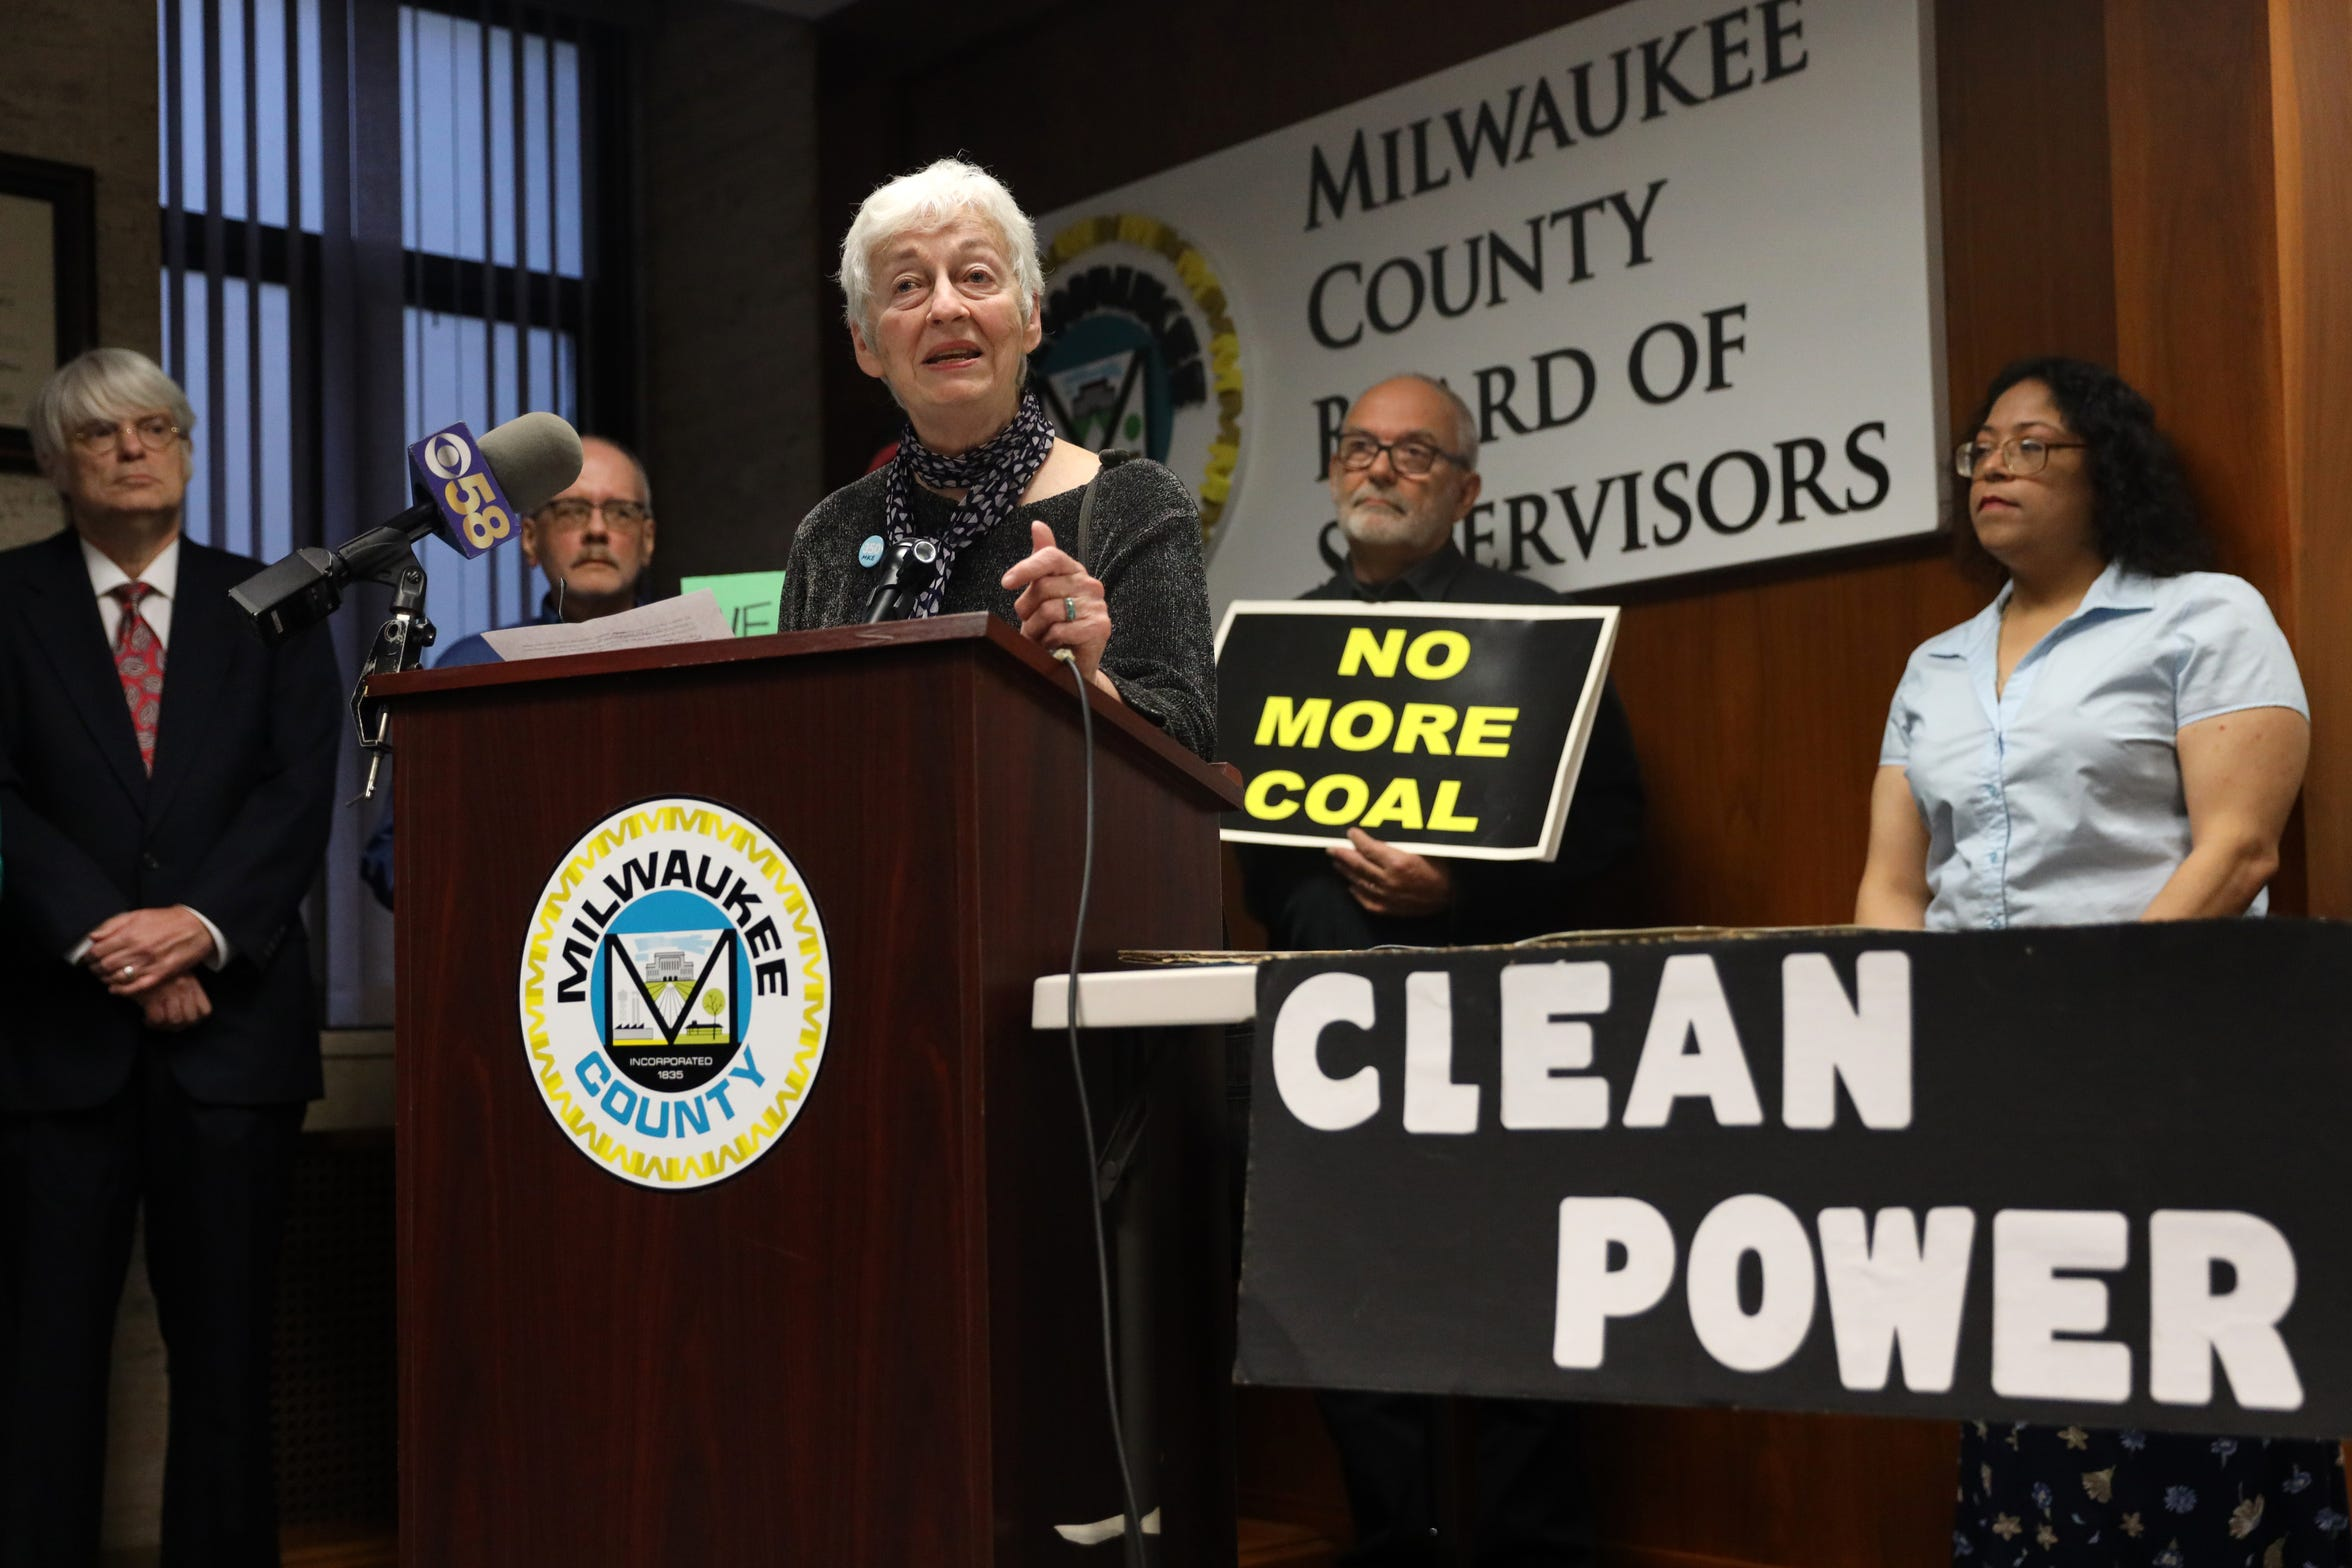 Julie Enslow from the Milwaukee chapter of 350.org, a climate-change advocacy group, speaks at a news conference hosted by the Sierra Club in Milwaukee on April 25, 2019. She and others oppose We Energies' request for a variance in the way mercury is measured in discharge water from the Oak Creek power plants near Milwaukee. Mercury is a well-known neurotoxin. The company says the variance will not increase emissions from the plant, but advocates fear it will.